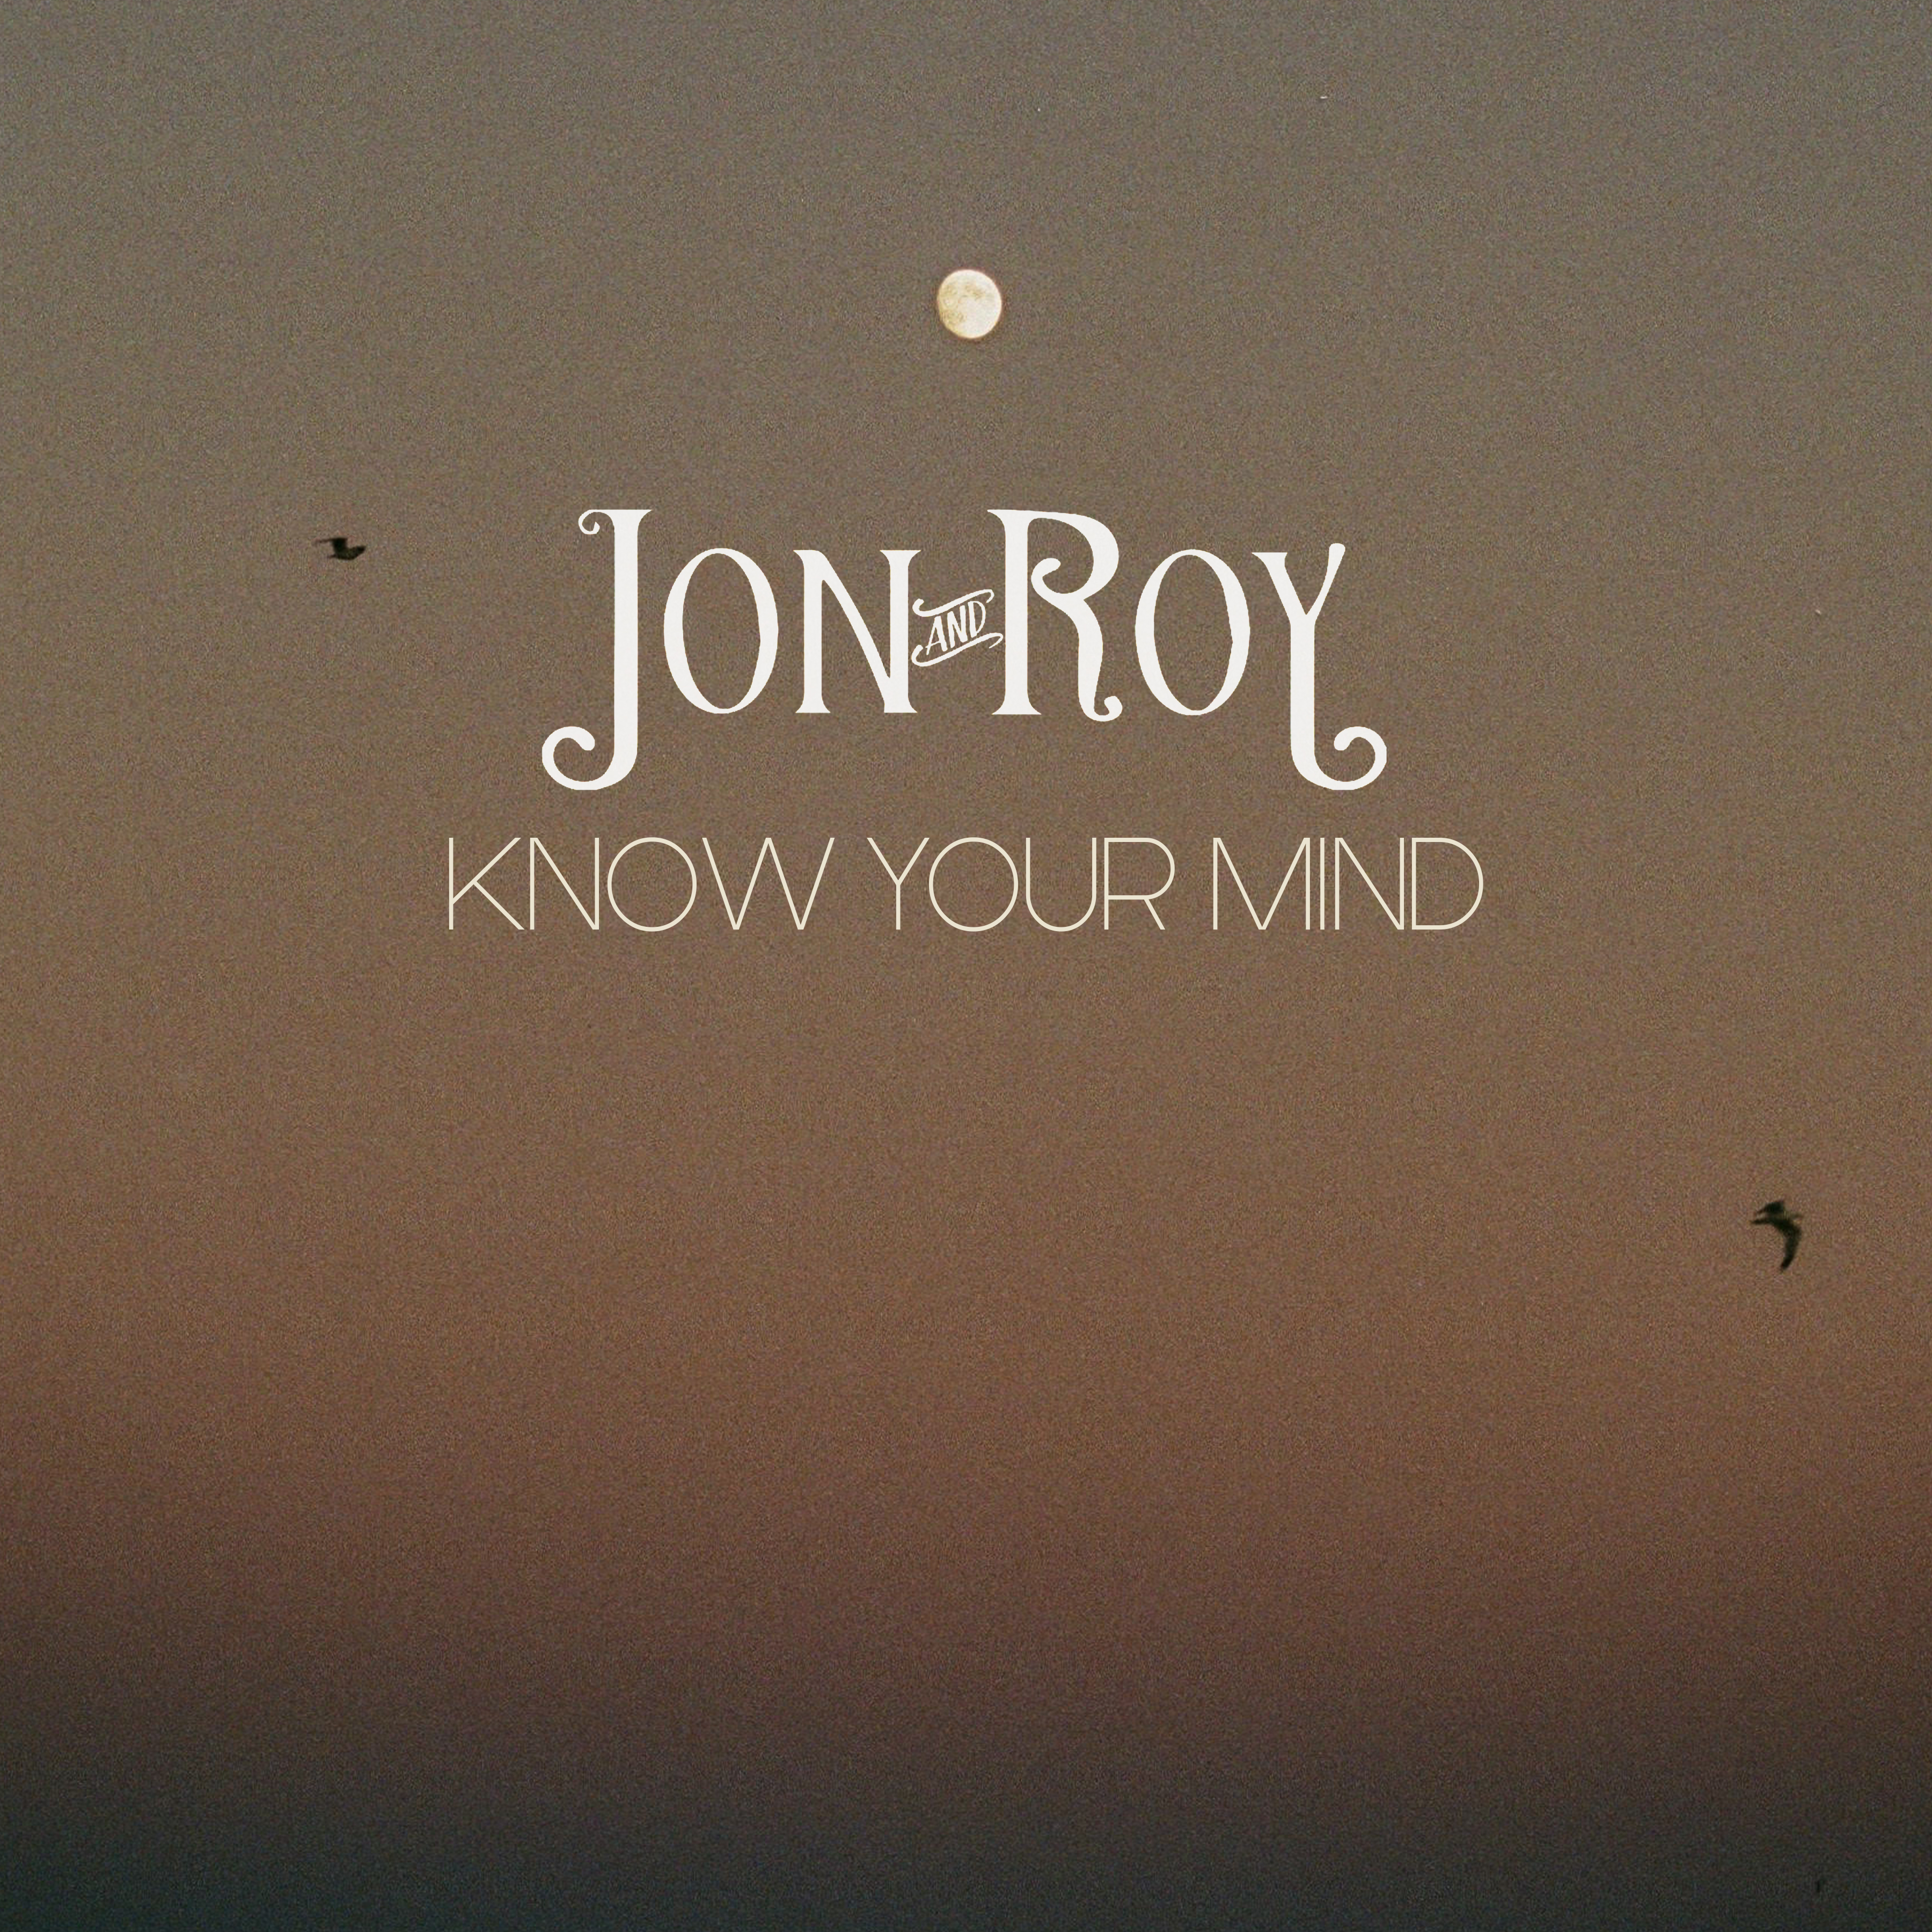 Know Your Mind Image